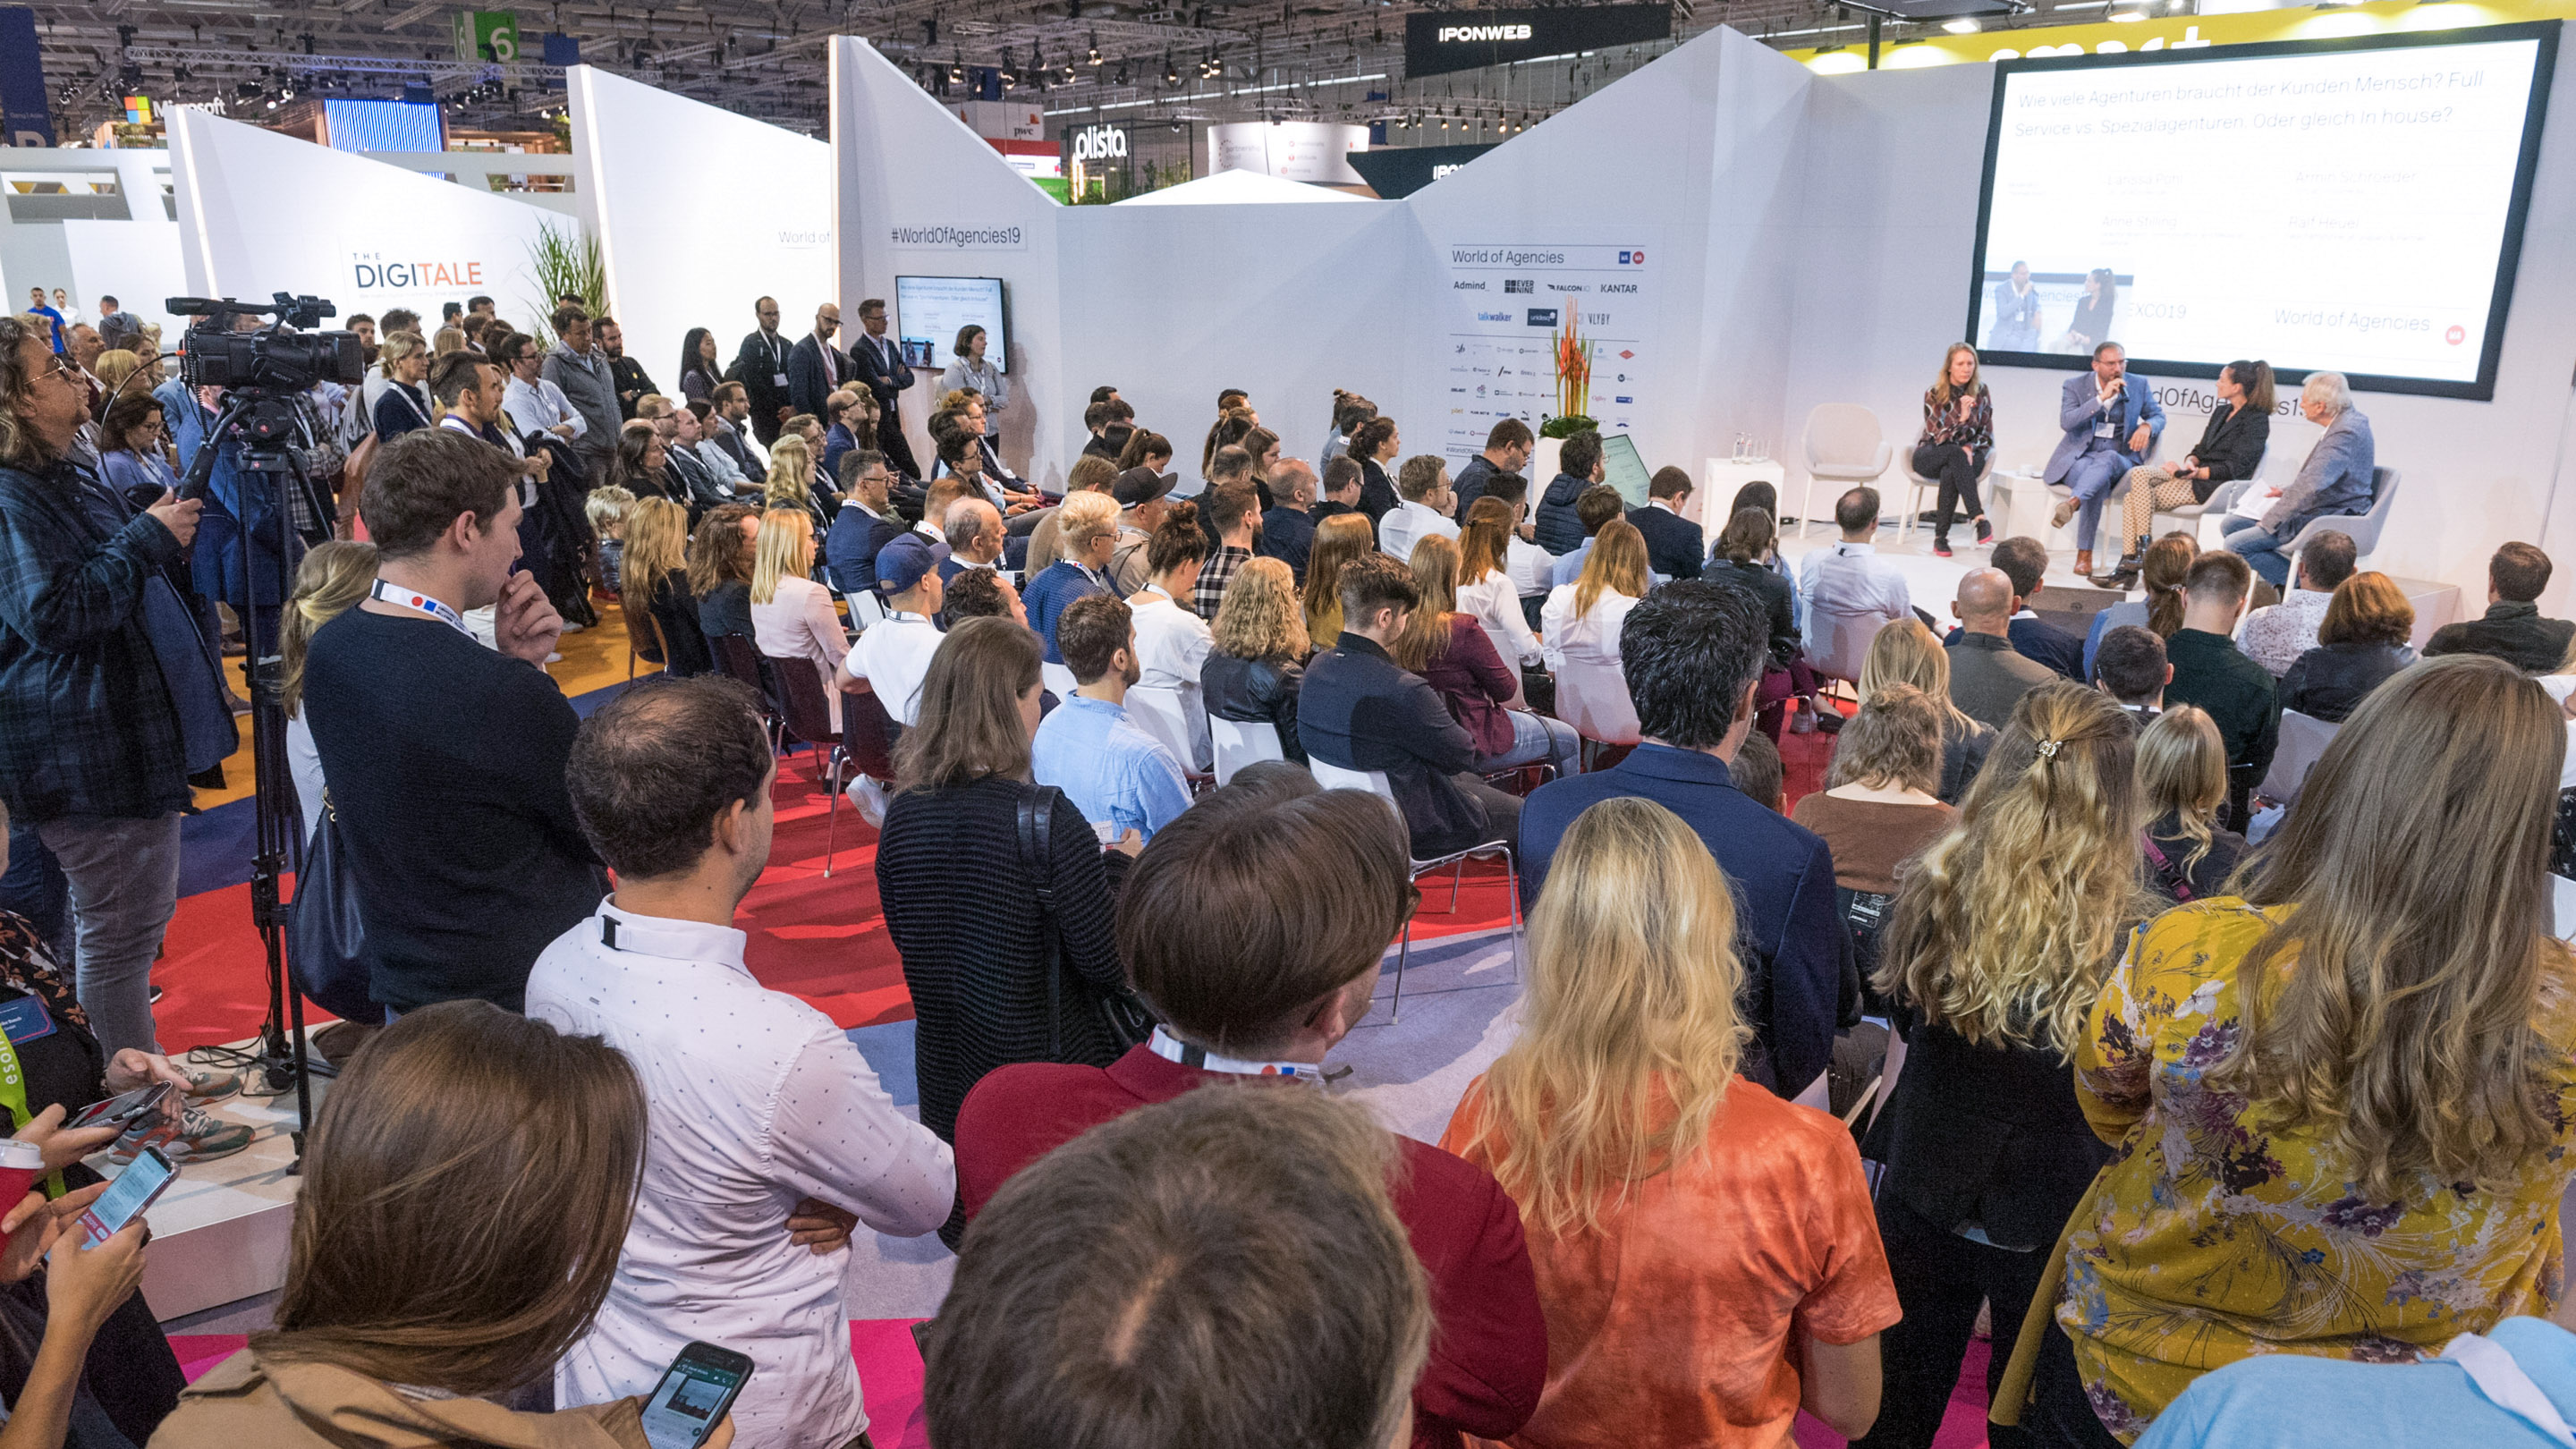 World of Agencies Bühne, Eröffnungspanel, Halle 6, DMEXCO 2019